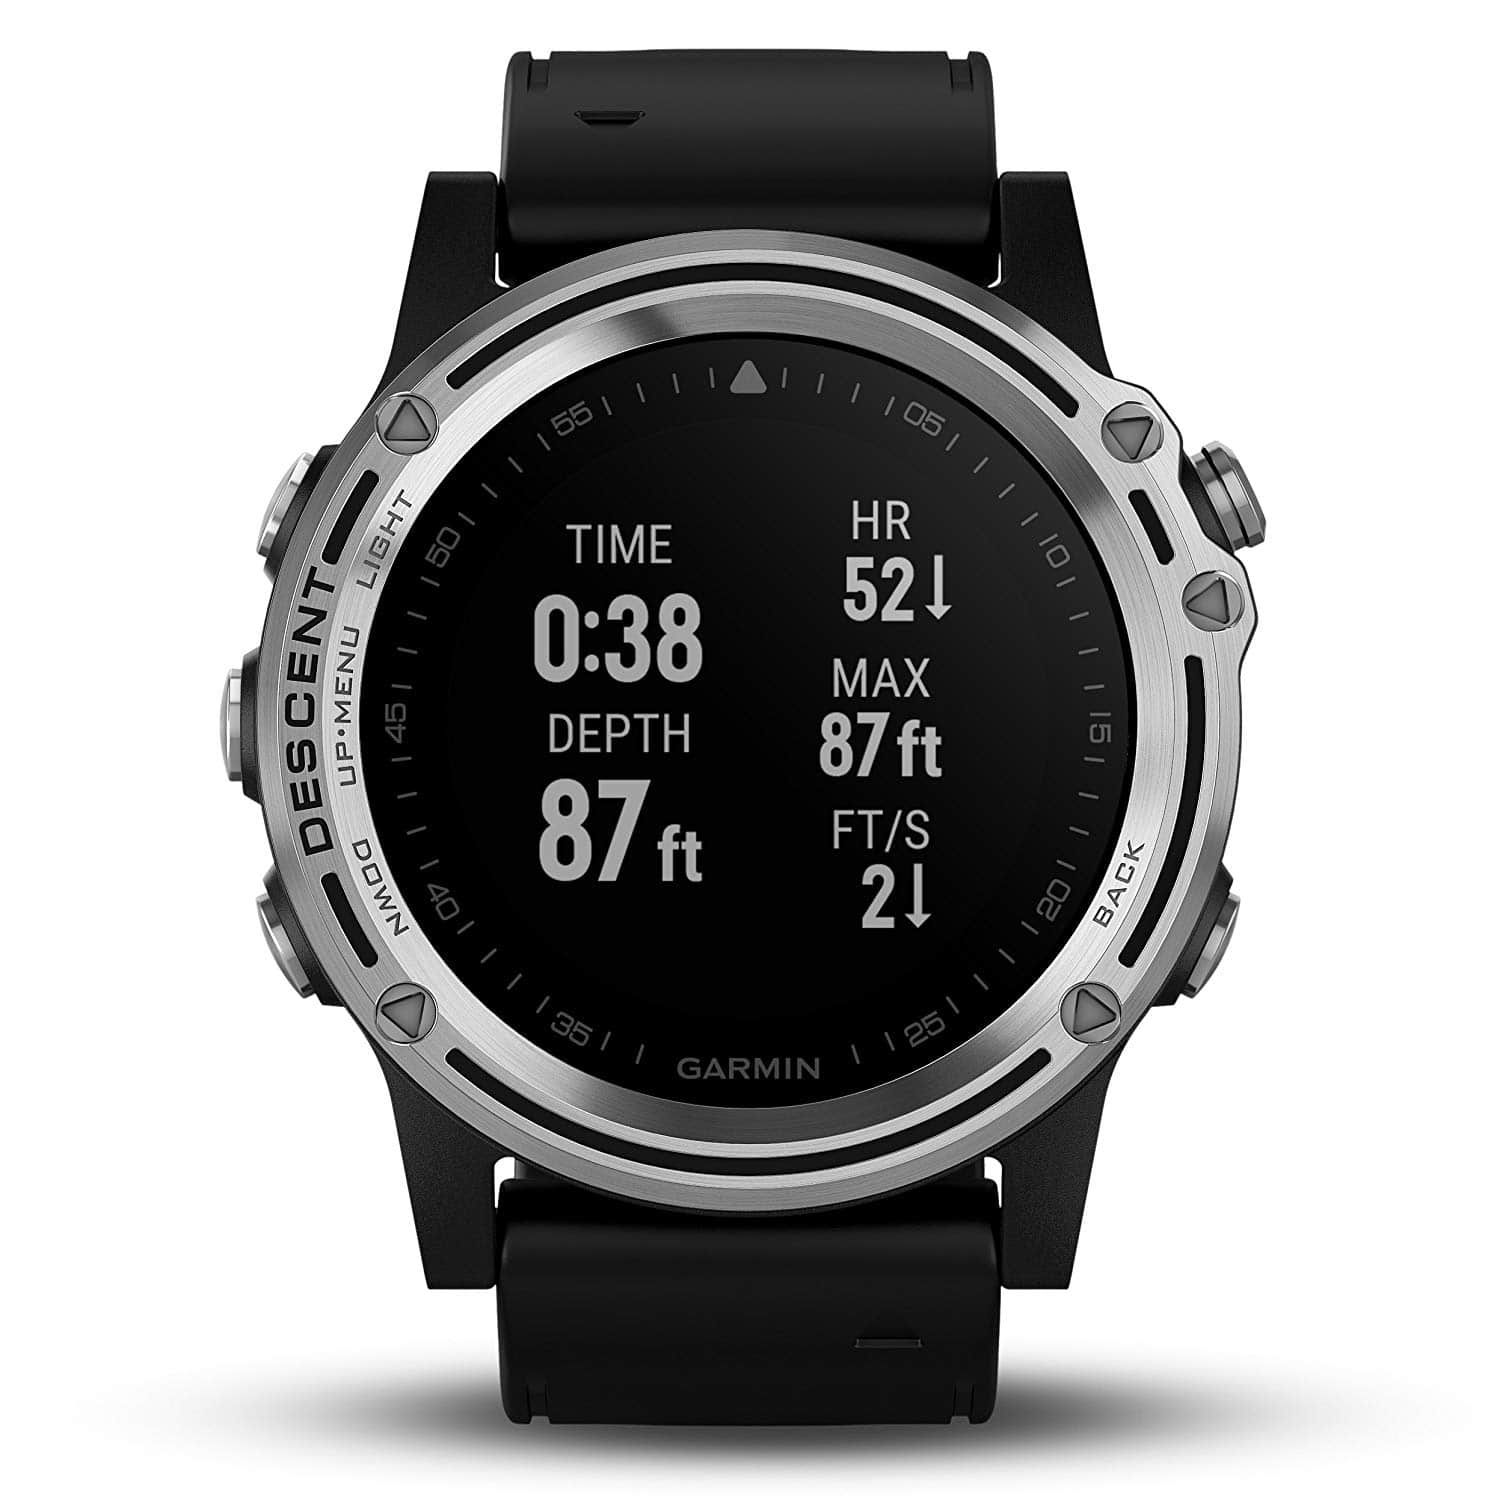 Garmin Descent MK1 Watch